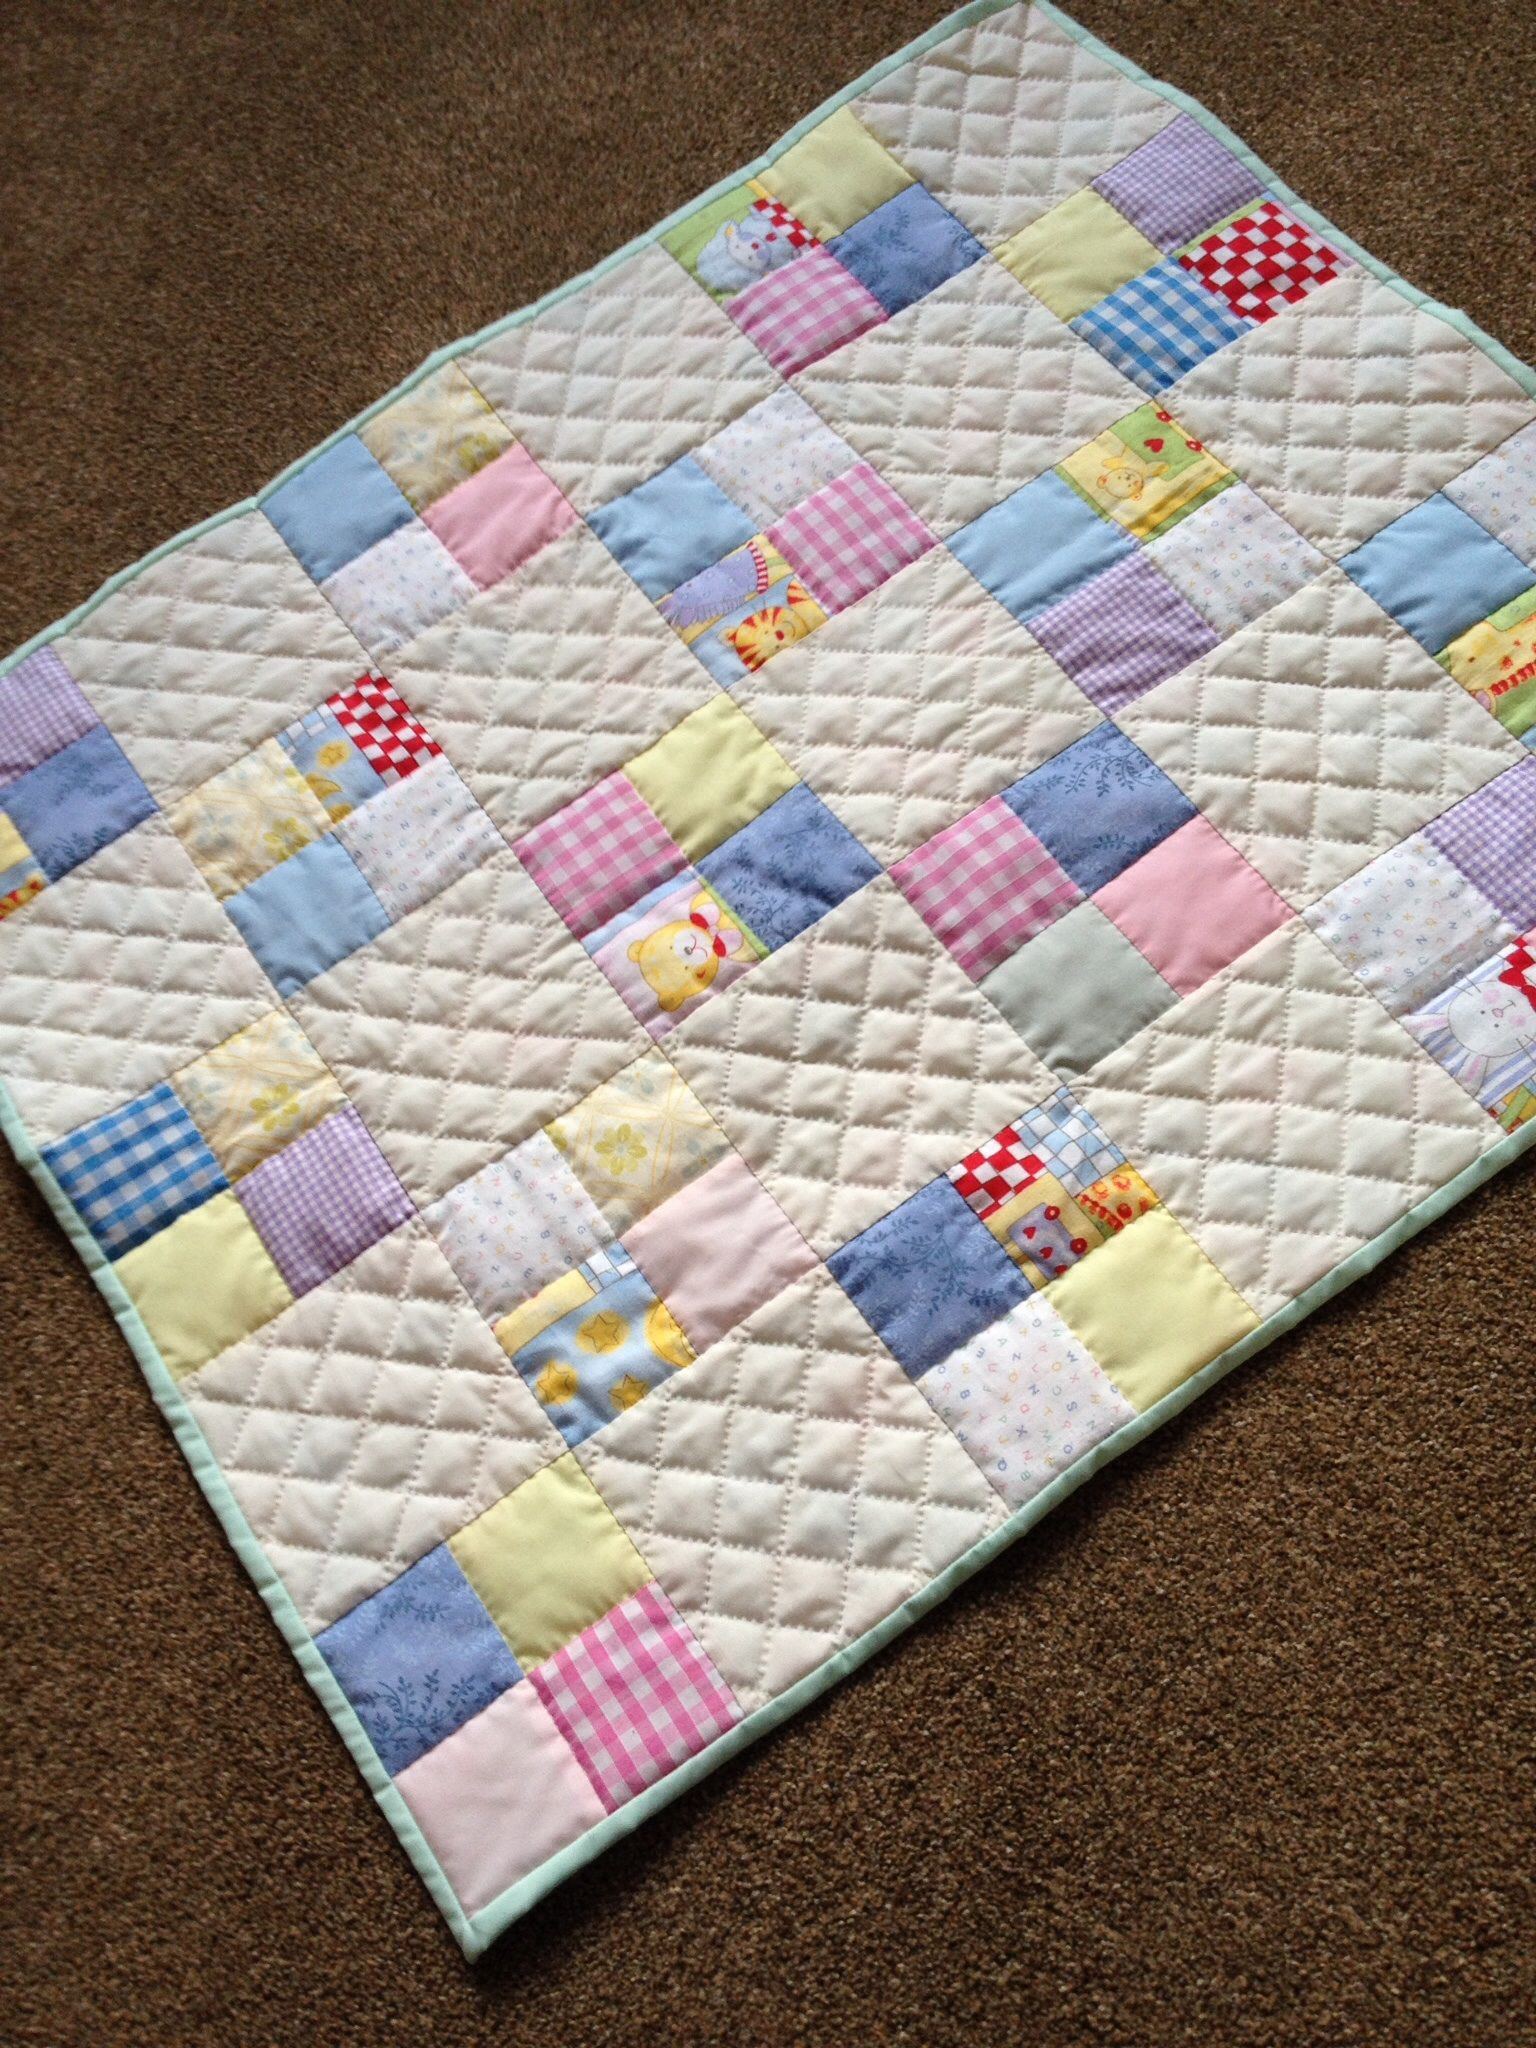 Baby pram/Moses basket quilt - hand quilted - stitch in the ditch ... : cross hatch quilting - Adamdwight.com